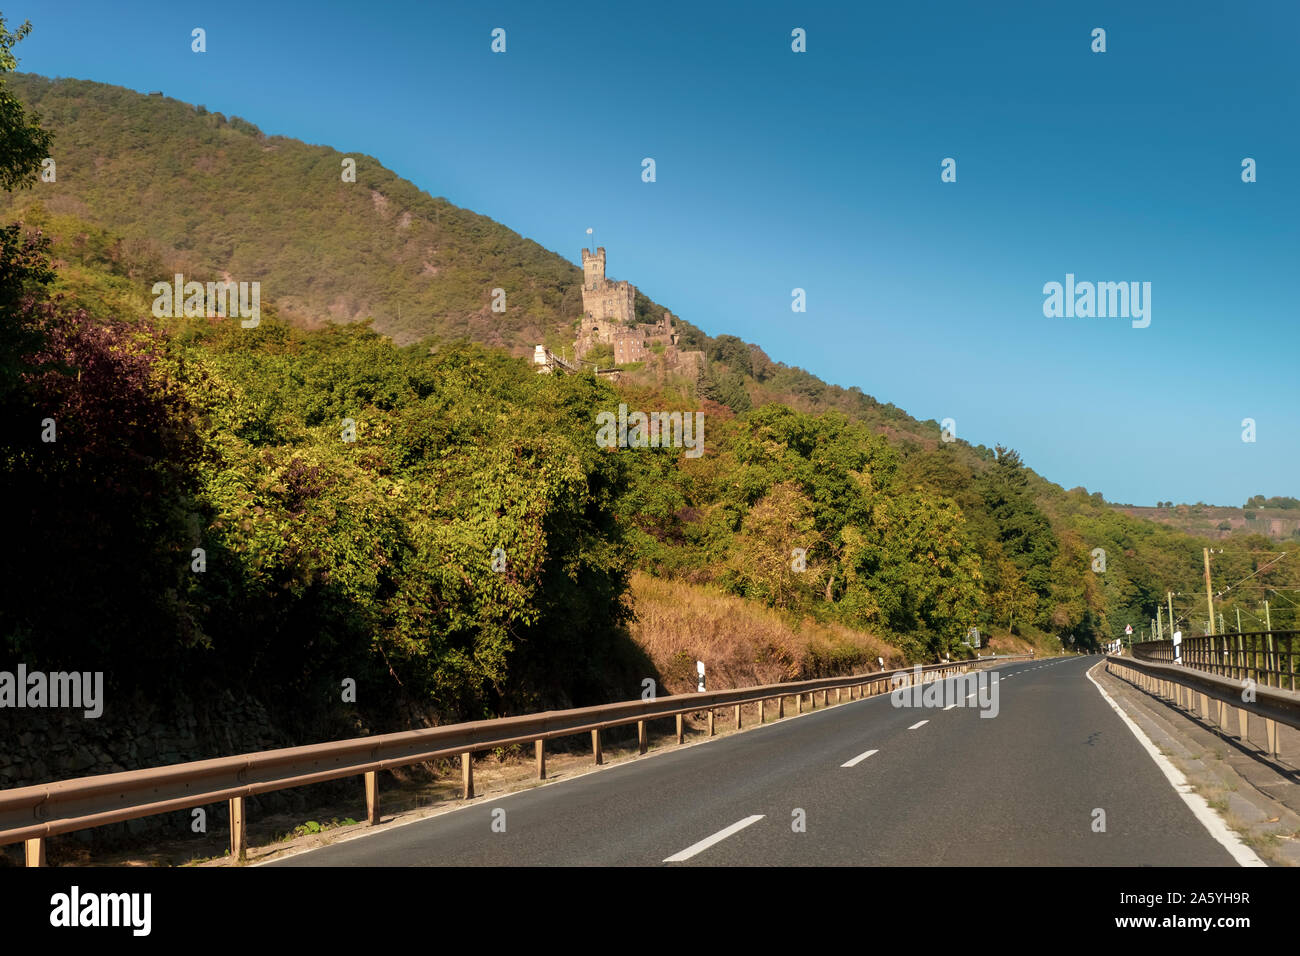 Sooneck Castle in the Rhine Valley, viewed from the road, on a sunny autumn day. Stock Photo